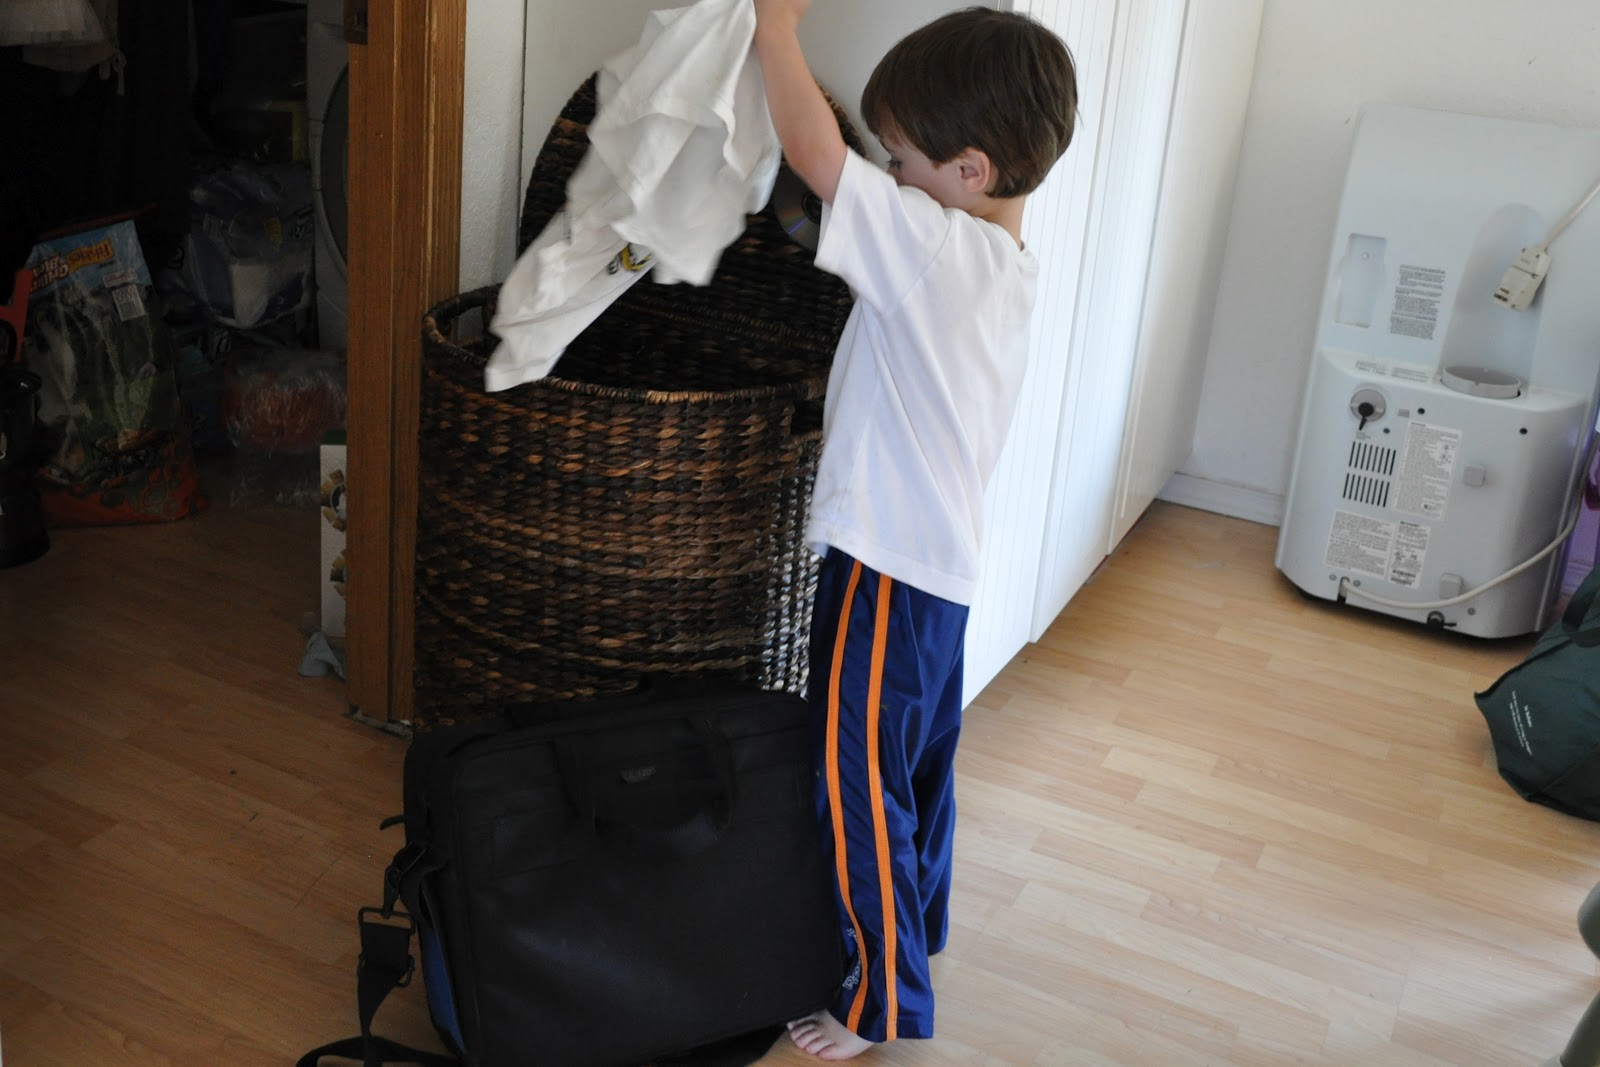 Put clothes in hamper images galleries with a bite - Hamper for dirty clothes ...